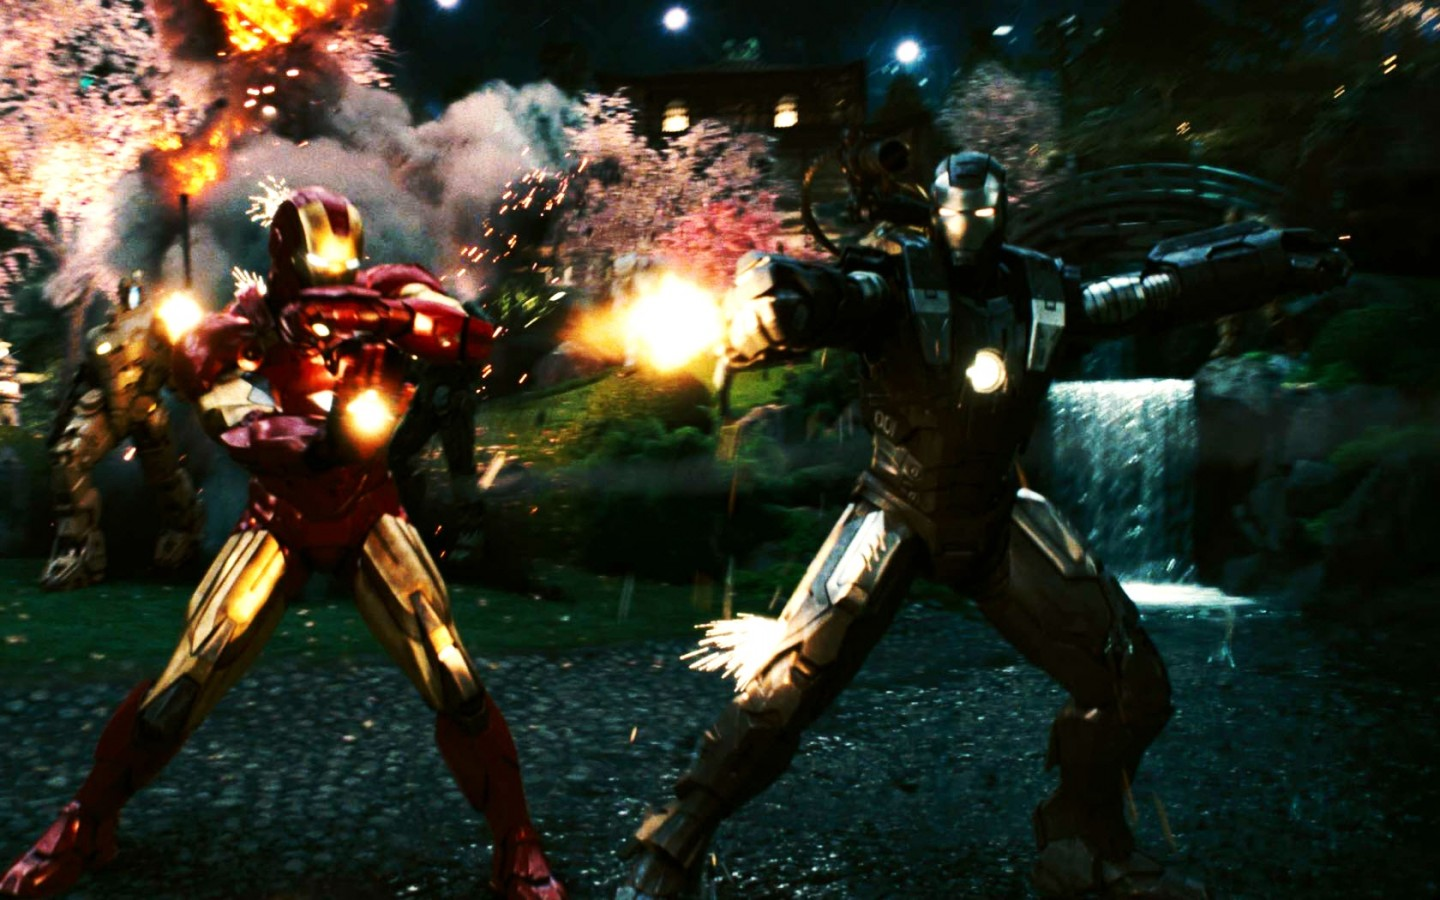 Wallpapers Of Cute Dolls For Desktop Iron Man 2 Last Scene Wallpapers Hd Wallpapers Id 8637